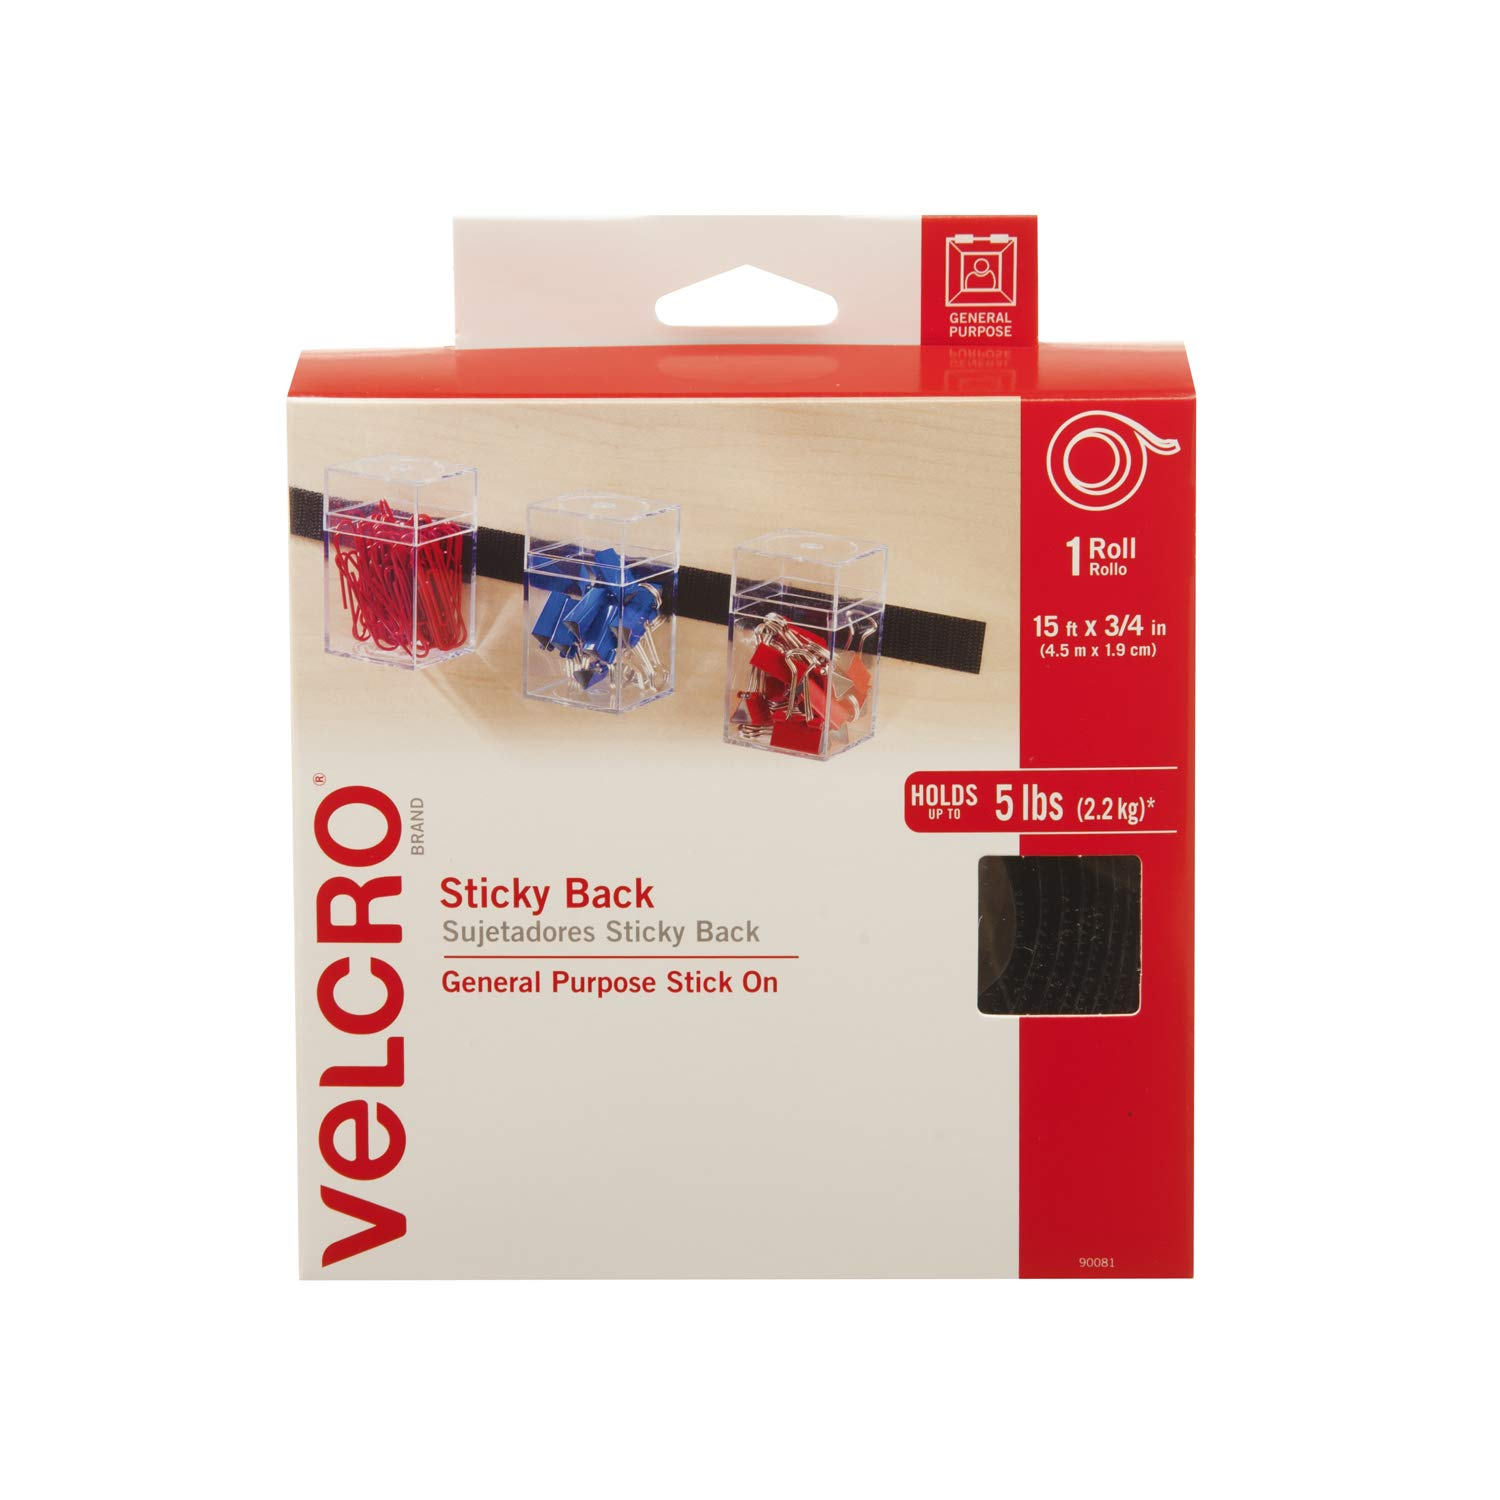 VELCRO Brand - Sticky Back Hook and Loop Fasteners| Perfect for Home or Office |15ft x 3/4in Tape | Black